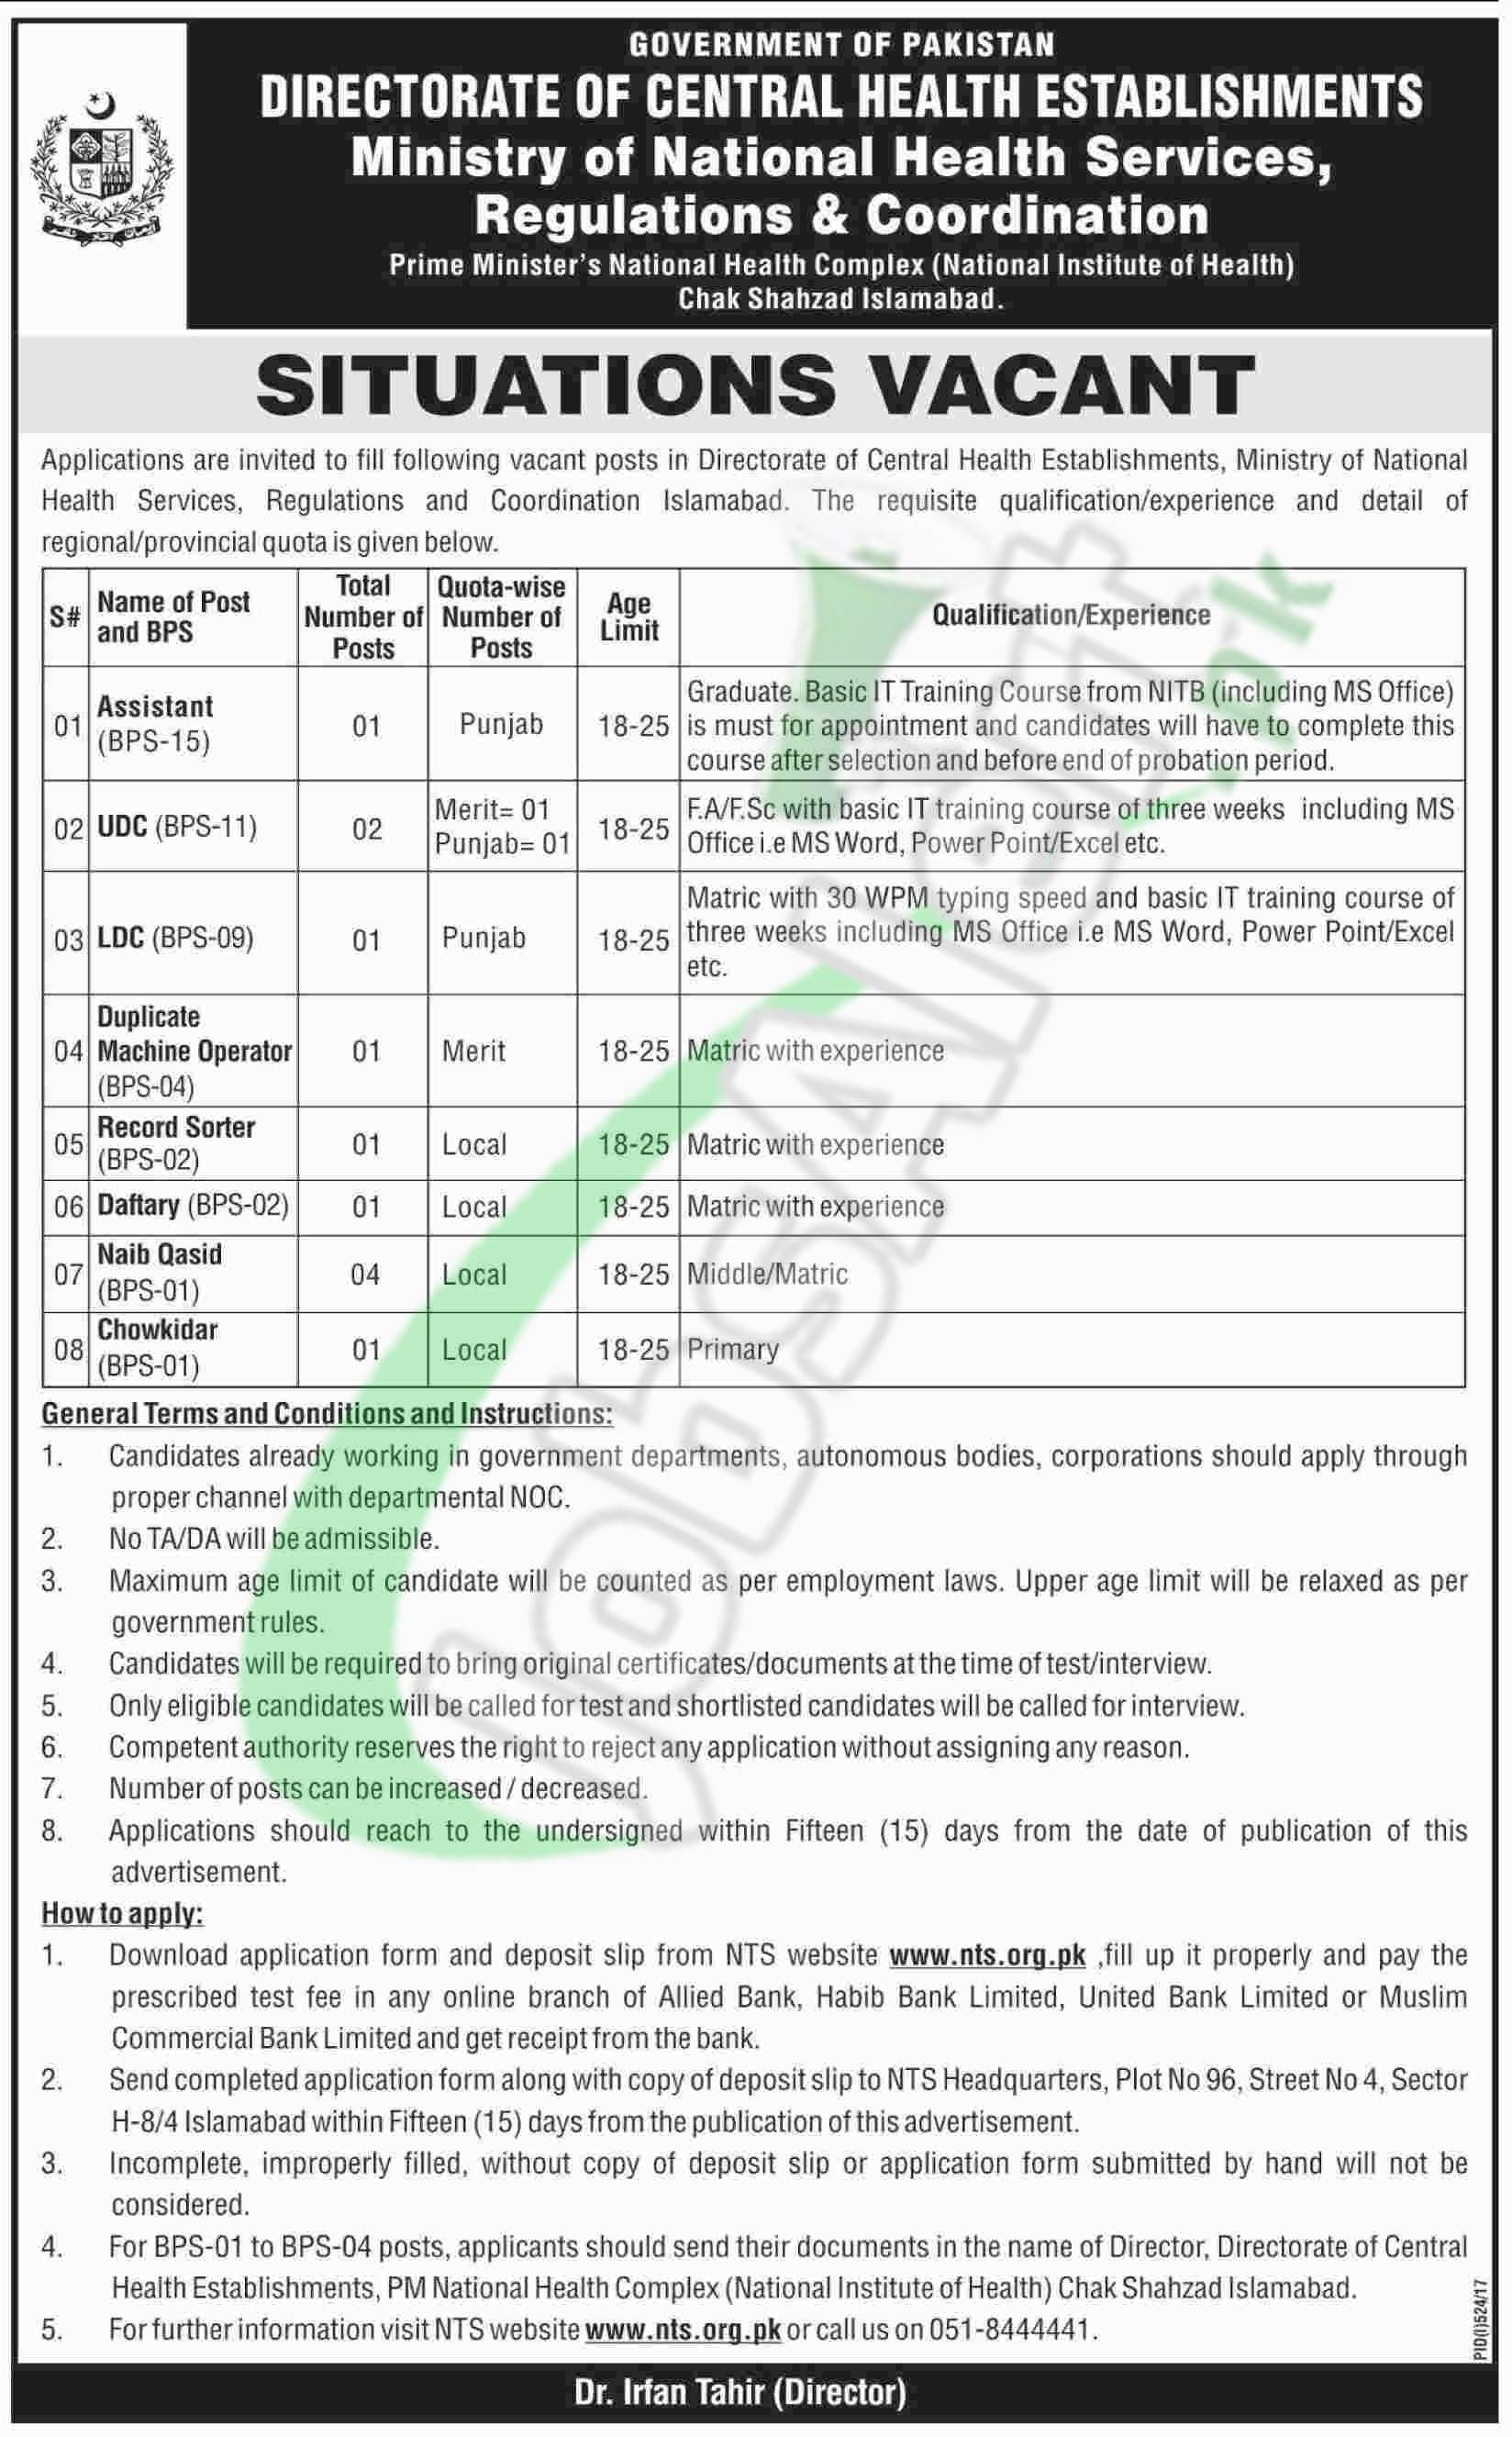 Ministry of National Health Services, Regulations & Coordination Jobs